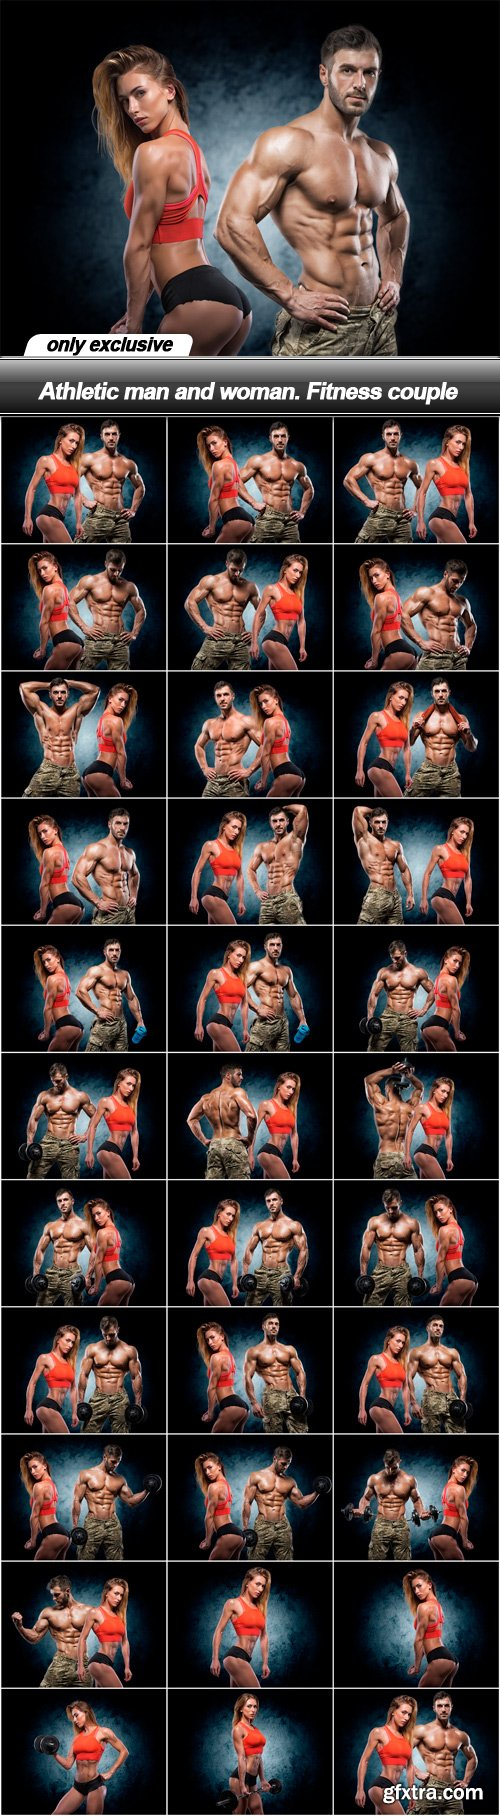 Athletic man and woman. Fitness couple - 32 UHQ JPEG